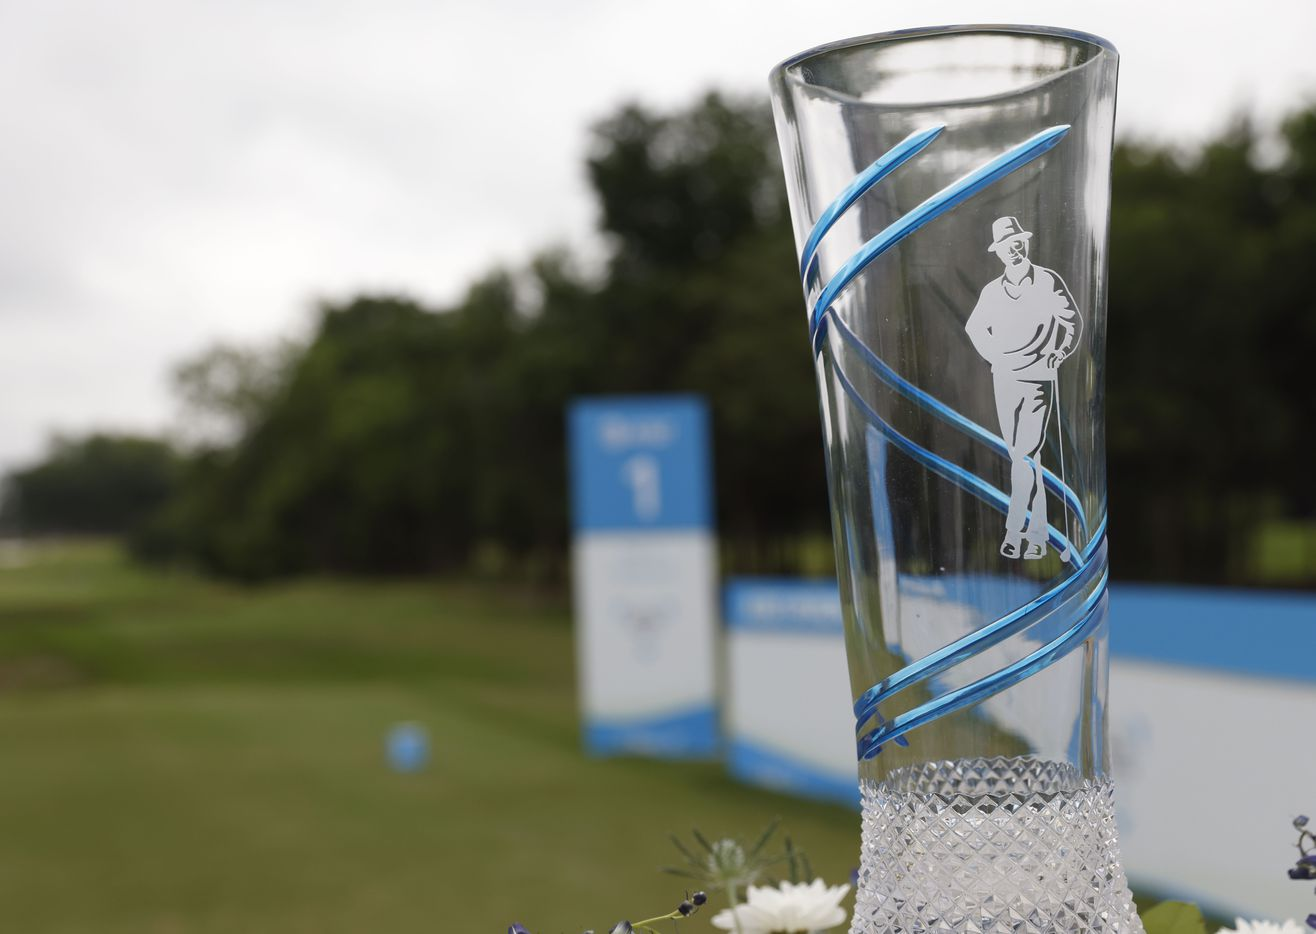 AT&T Byron Nelson tournament trophy sits at the tee box of the 1st hole during round 4 of the AT&T Byron Nelson  at TPC Craig Ranch on Saturday, May 16, 2021 in McKinney, Texas. (Vernon Bryant/The Dallas Morning News)